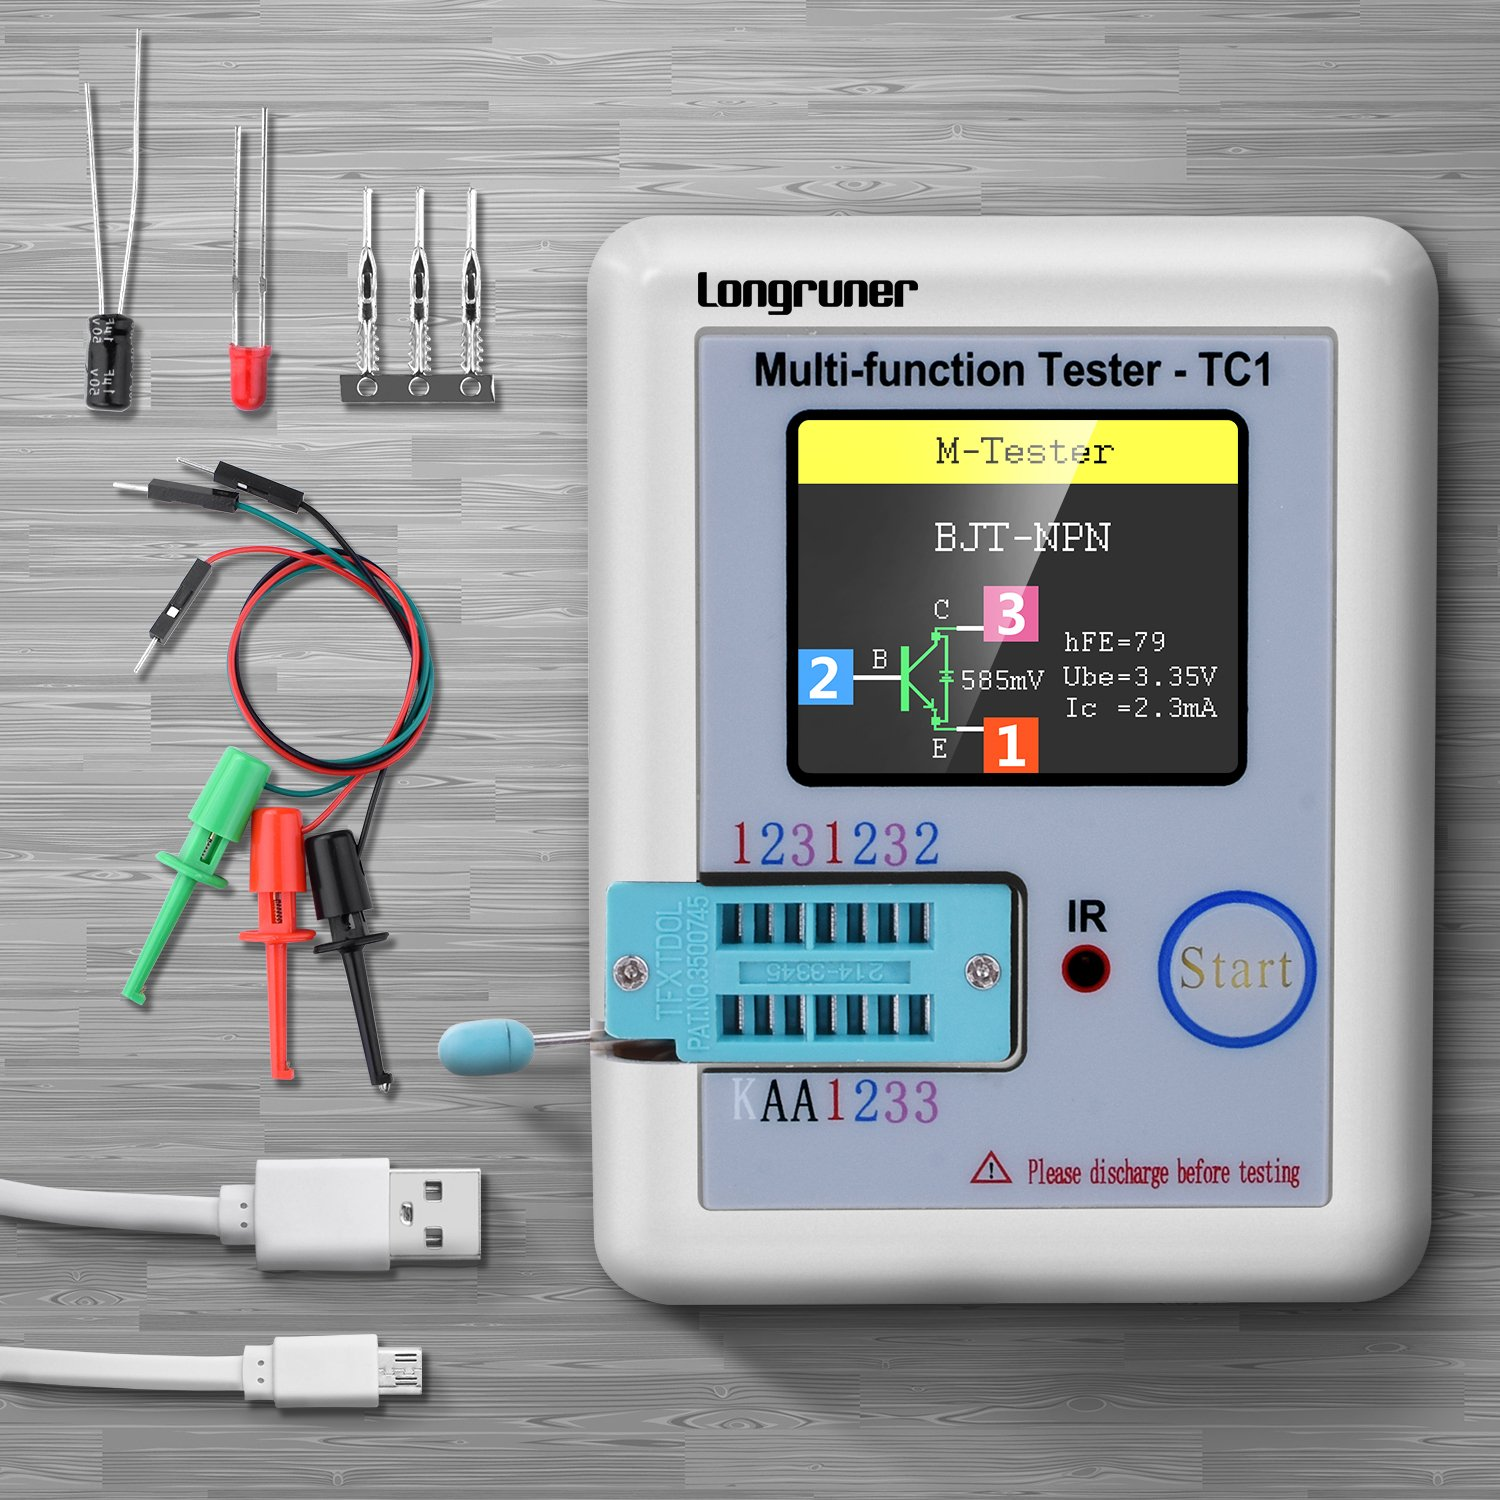 Multi Function Tester Longruner 18 Inch Colorful Display Figure 81 First Mosfet Test Circuit Pocketable Multifunctional Tft Backlight Transistor Lcr Tc1 For Diode Triode Capacitor